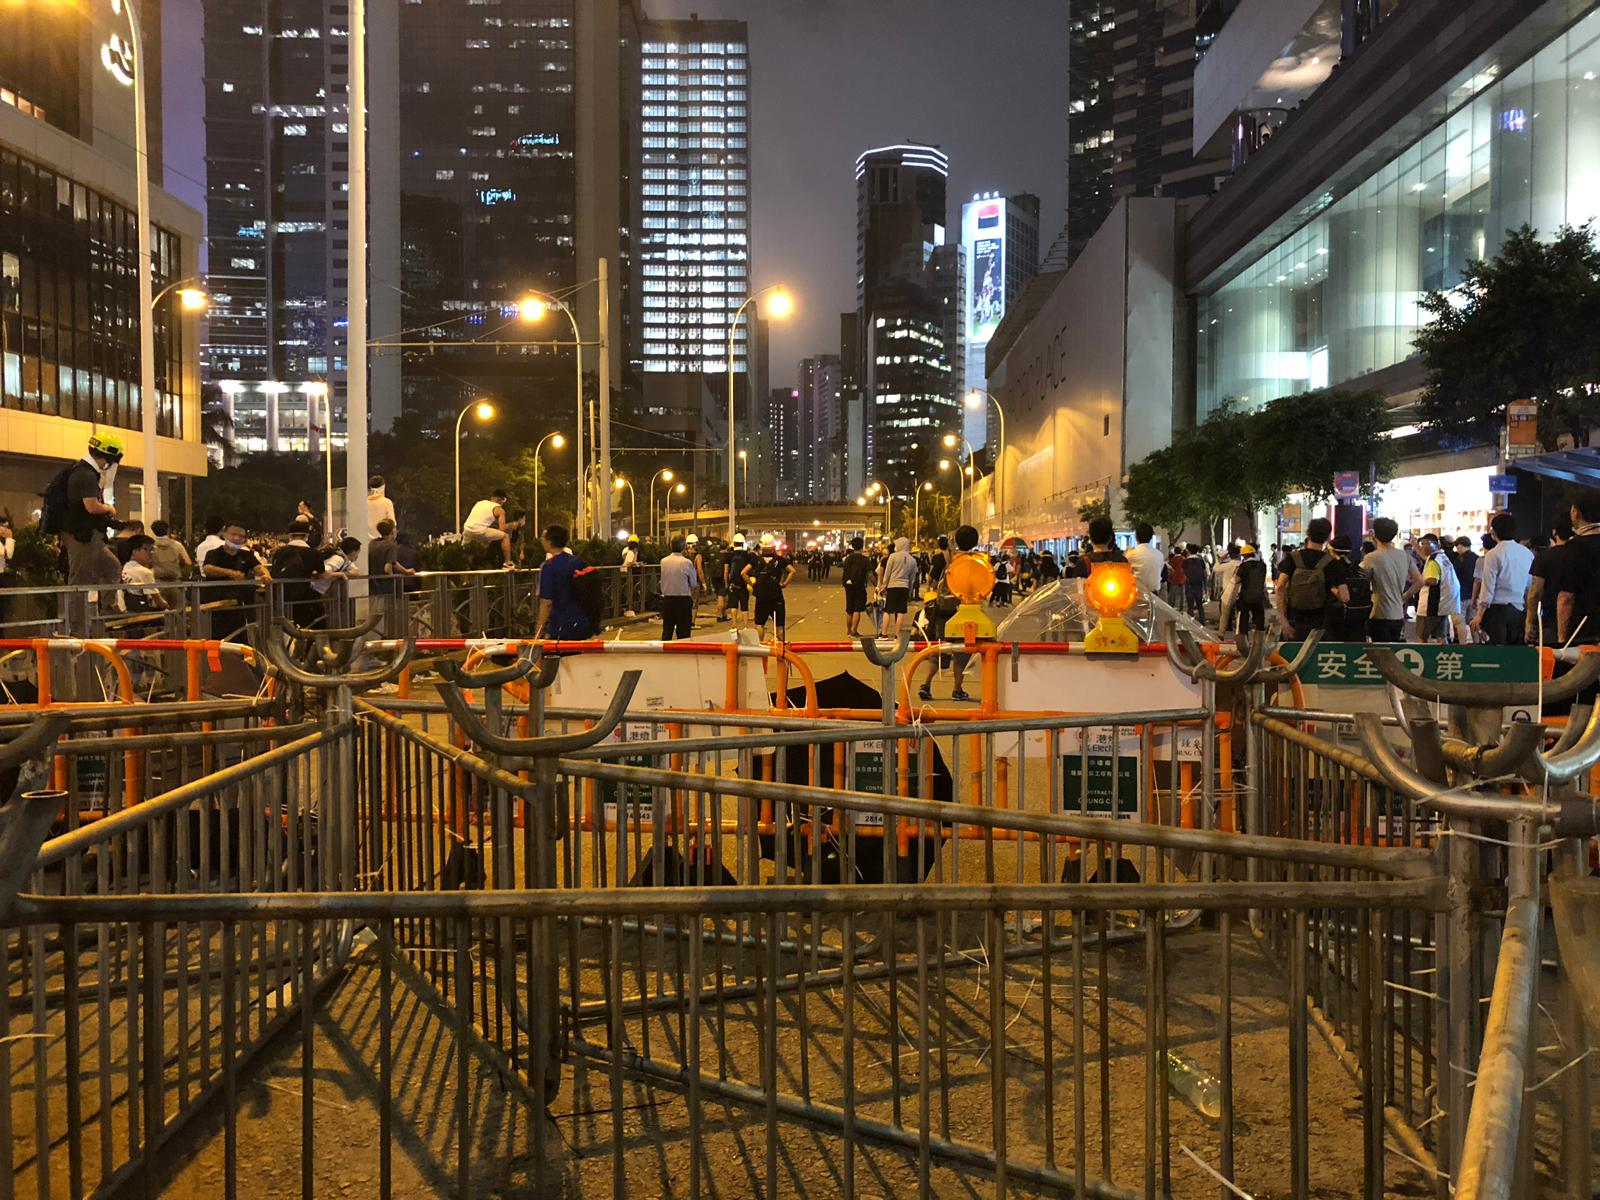 Barricades by Pacific Place where crowds of protesters are gathered.